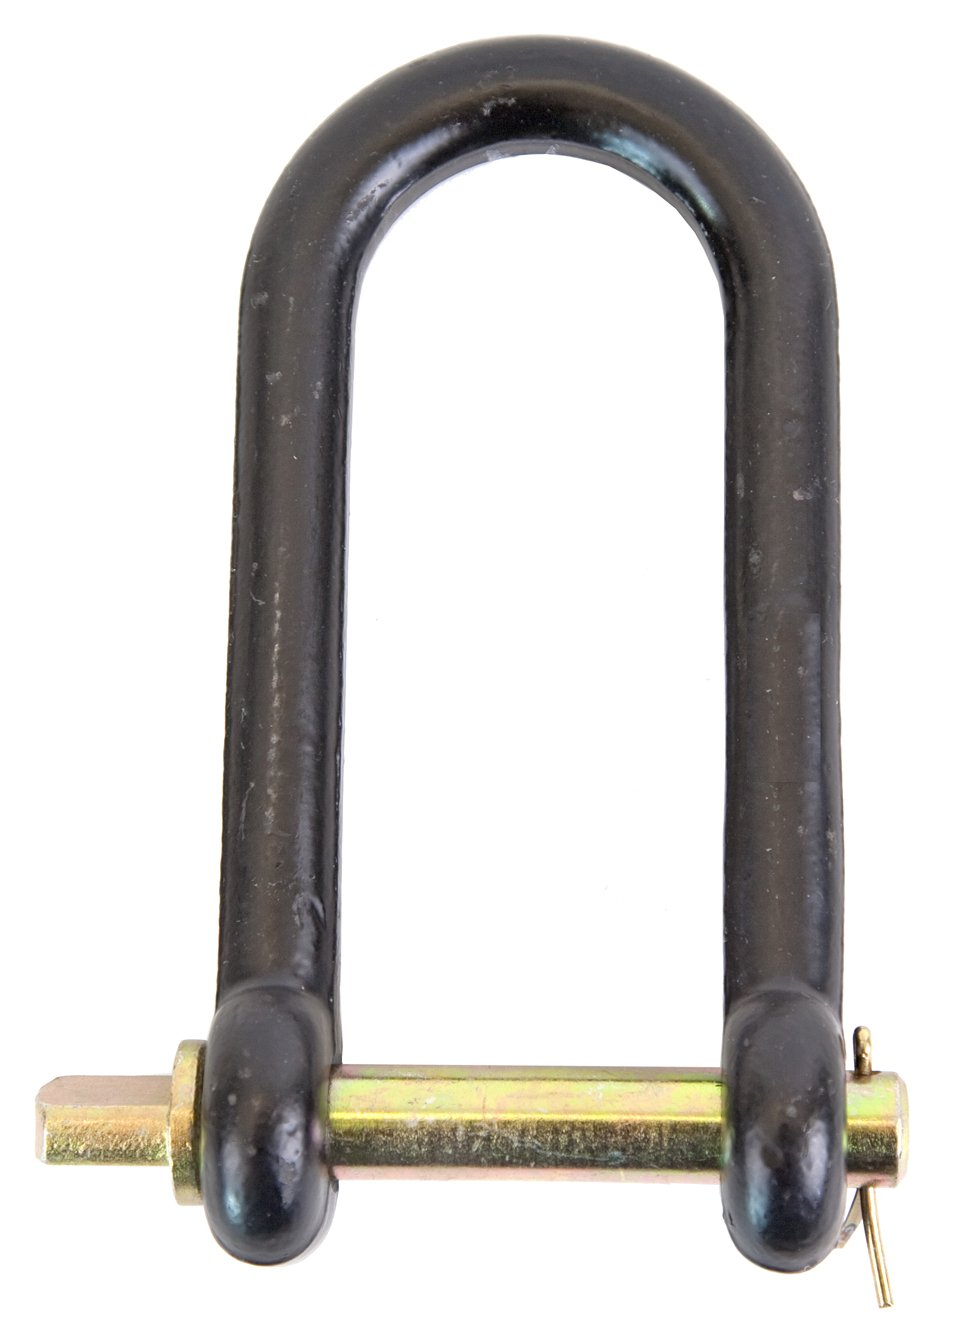 Koch 4005503 General Purpose Clevis, 3/4-Inch, Black